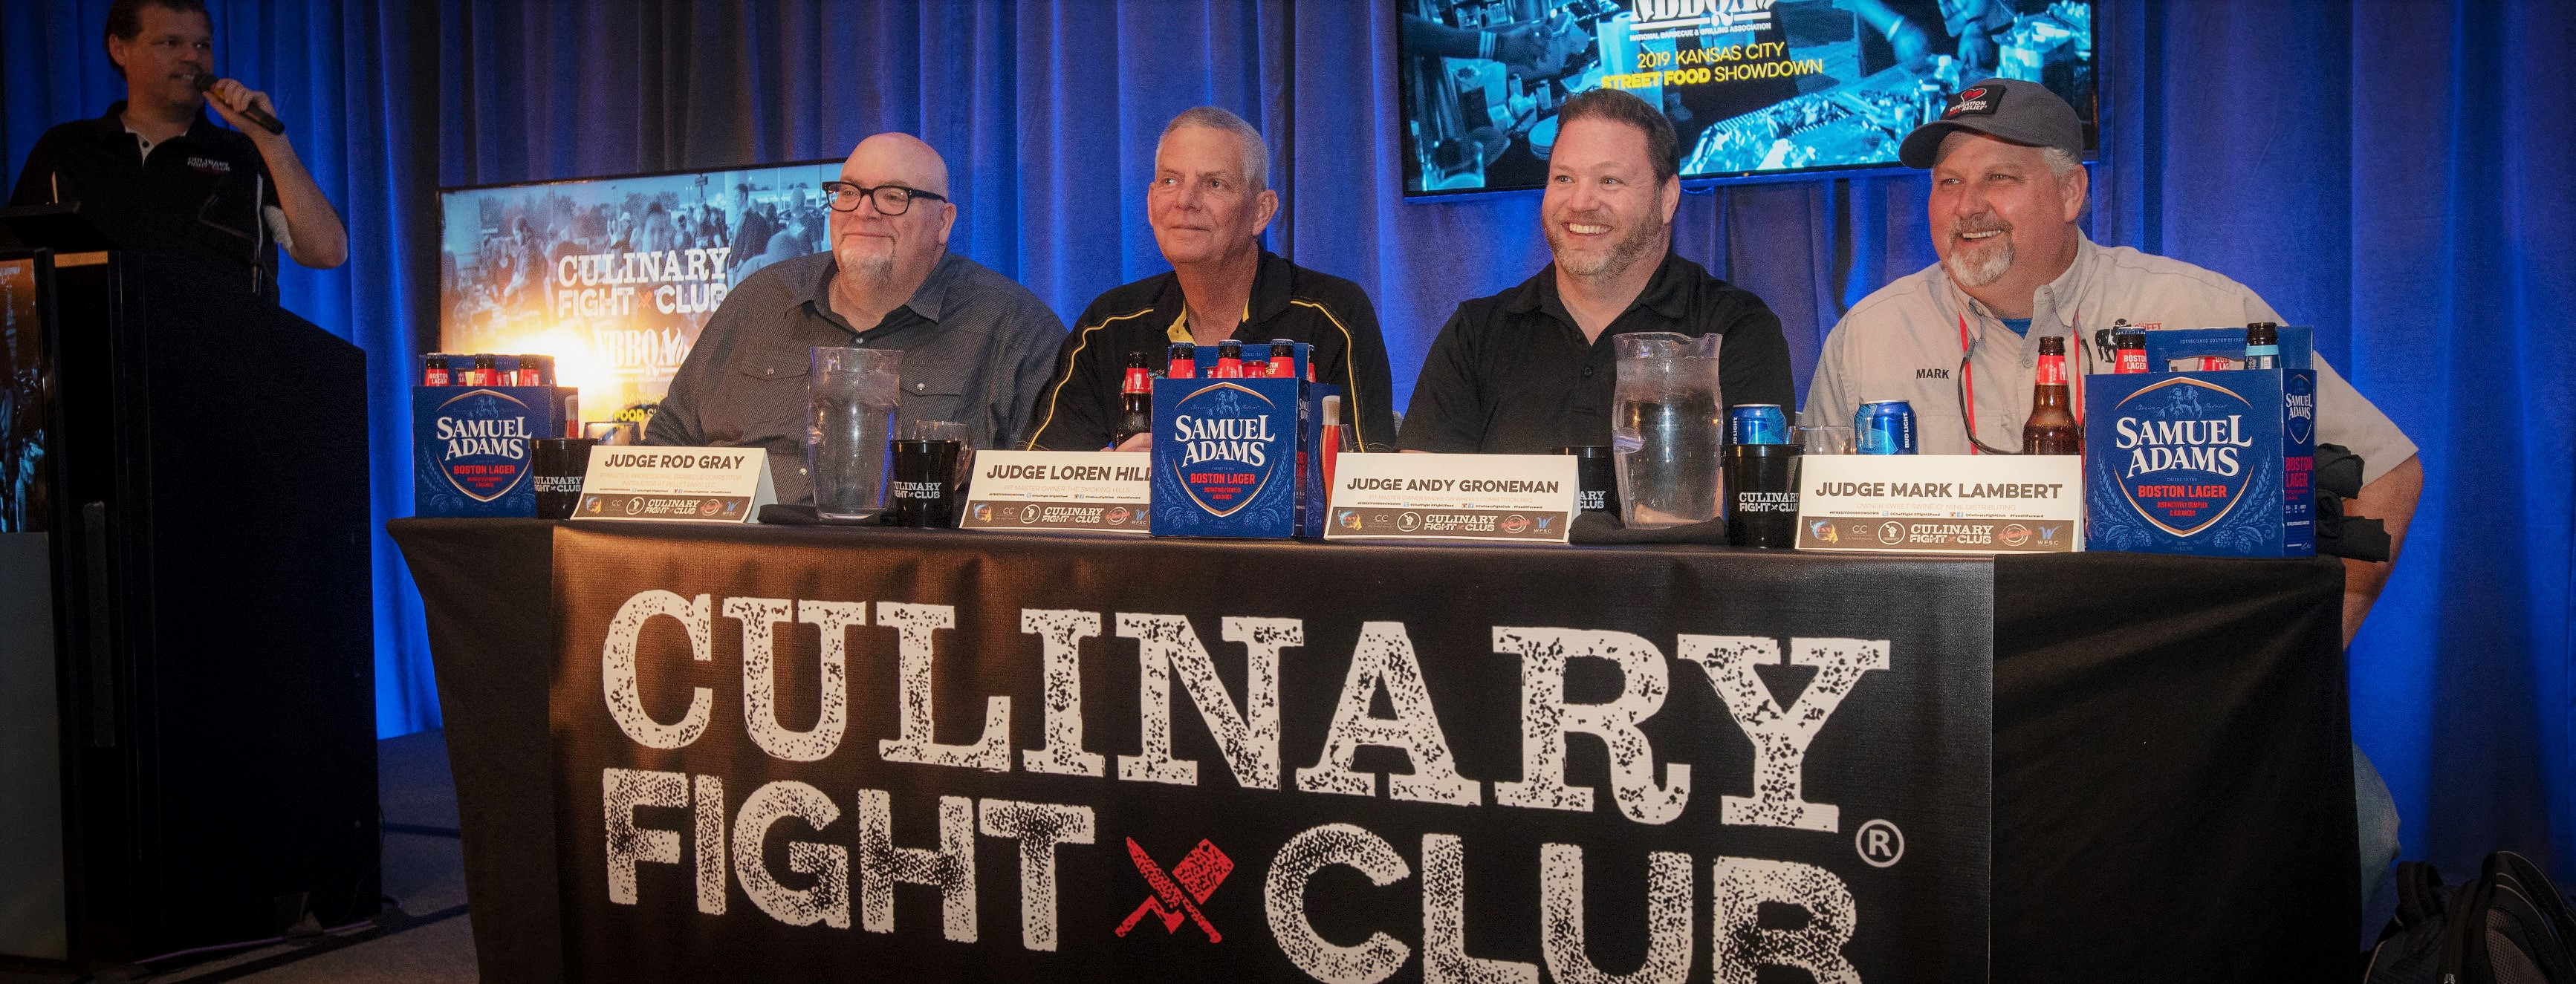 2019 Culinary Fight Club judges awaiting the team's entries